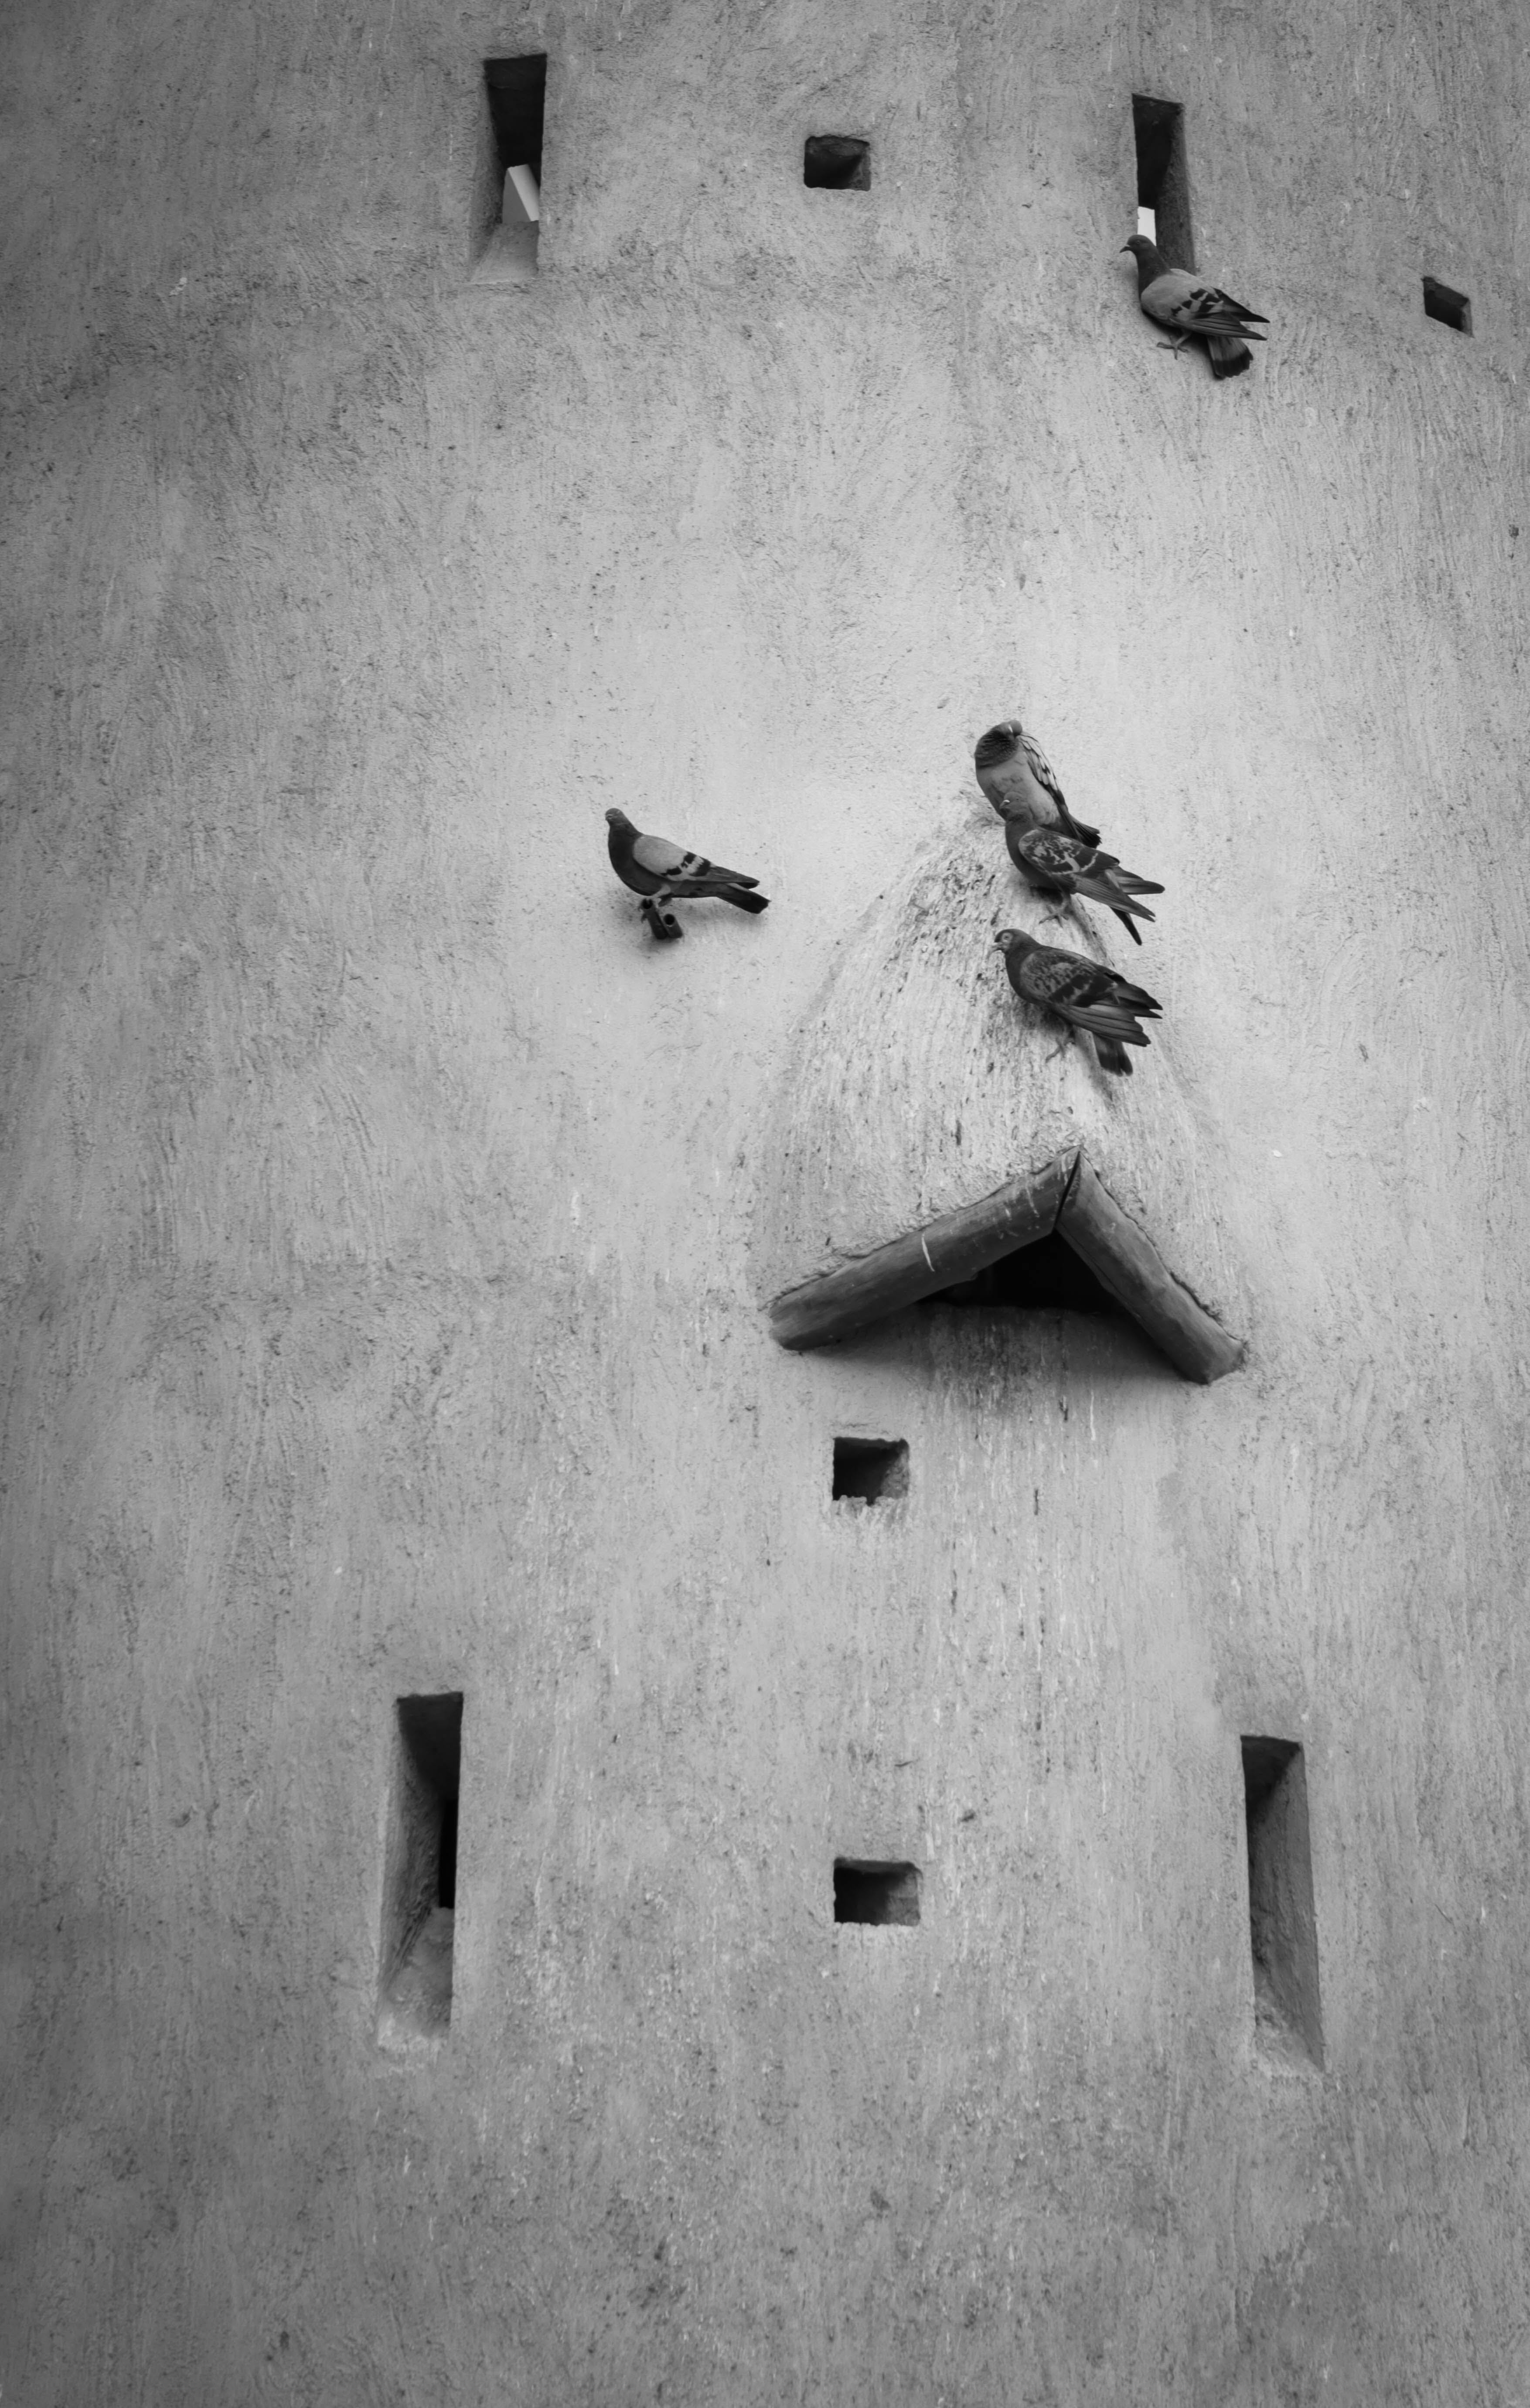 Pigeons on Concrete Wall